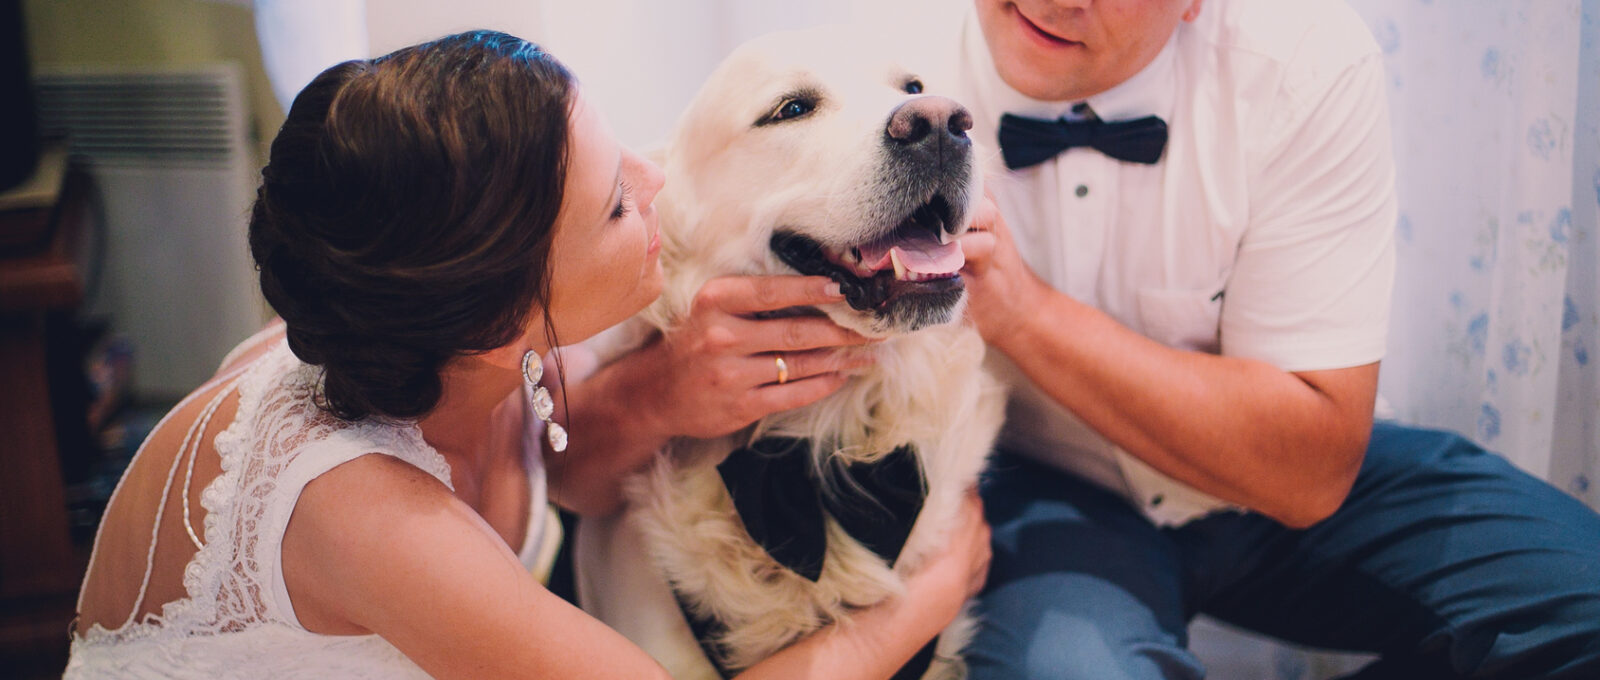 groom and bride playing with their dog labrador at home